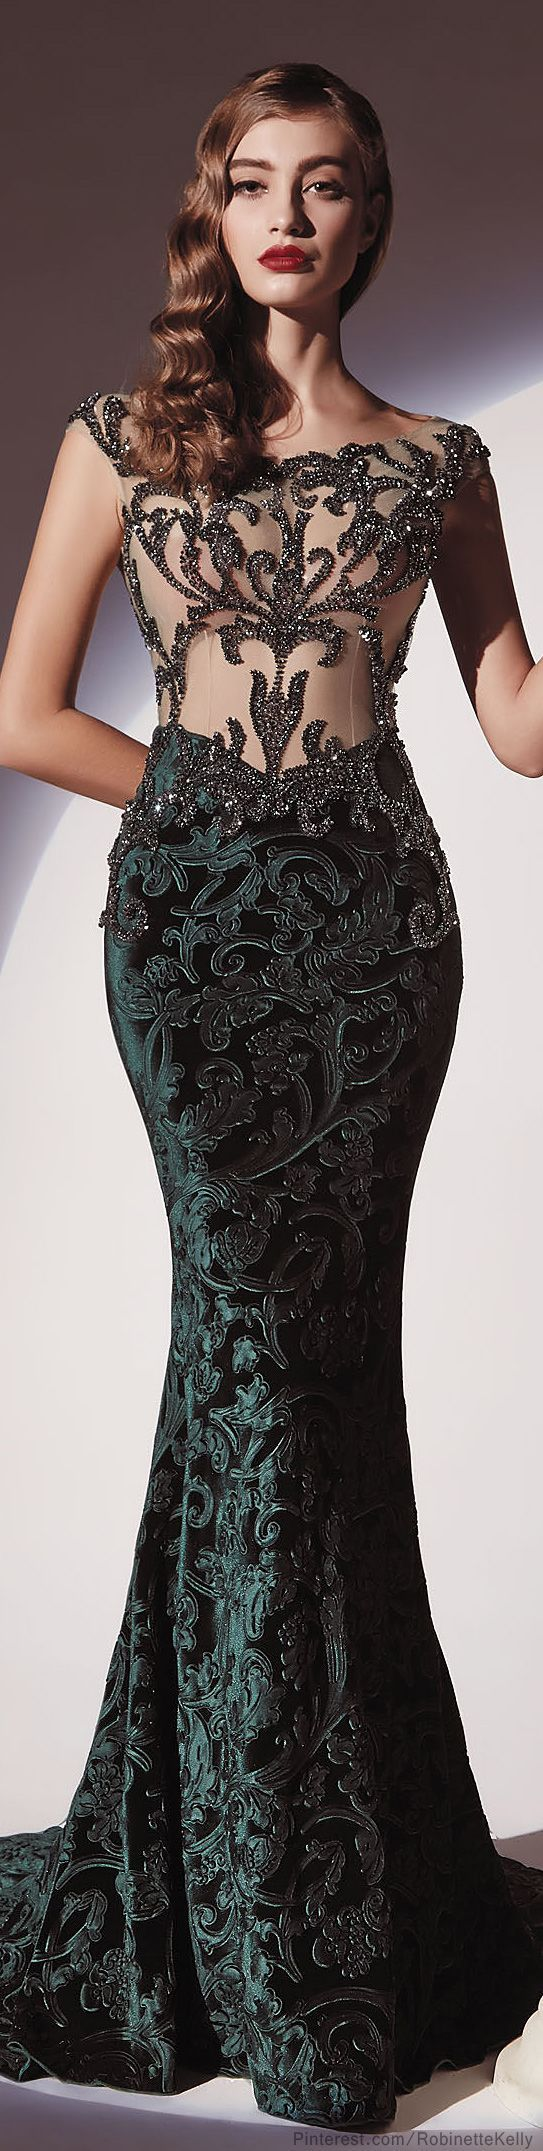 Dany Tabet Couture - daring but lovely silhouette!